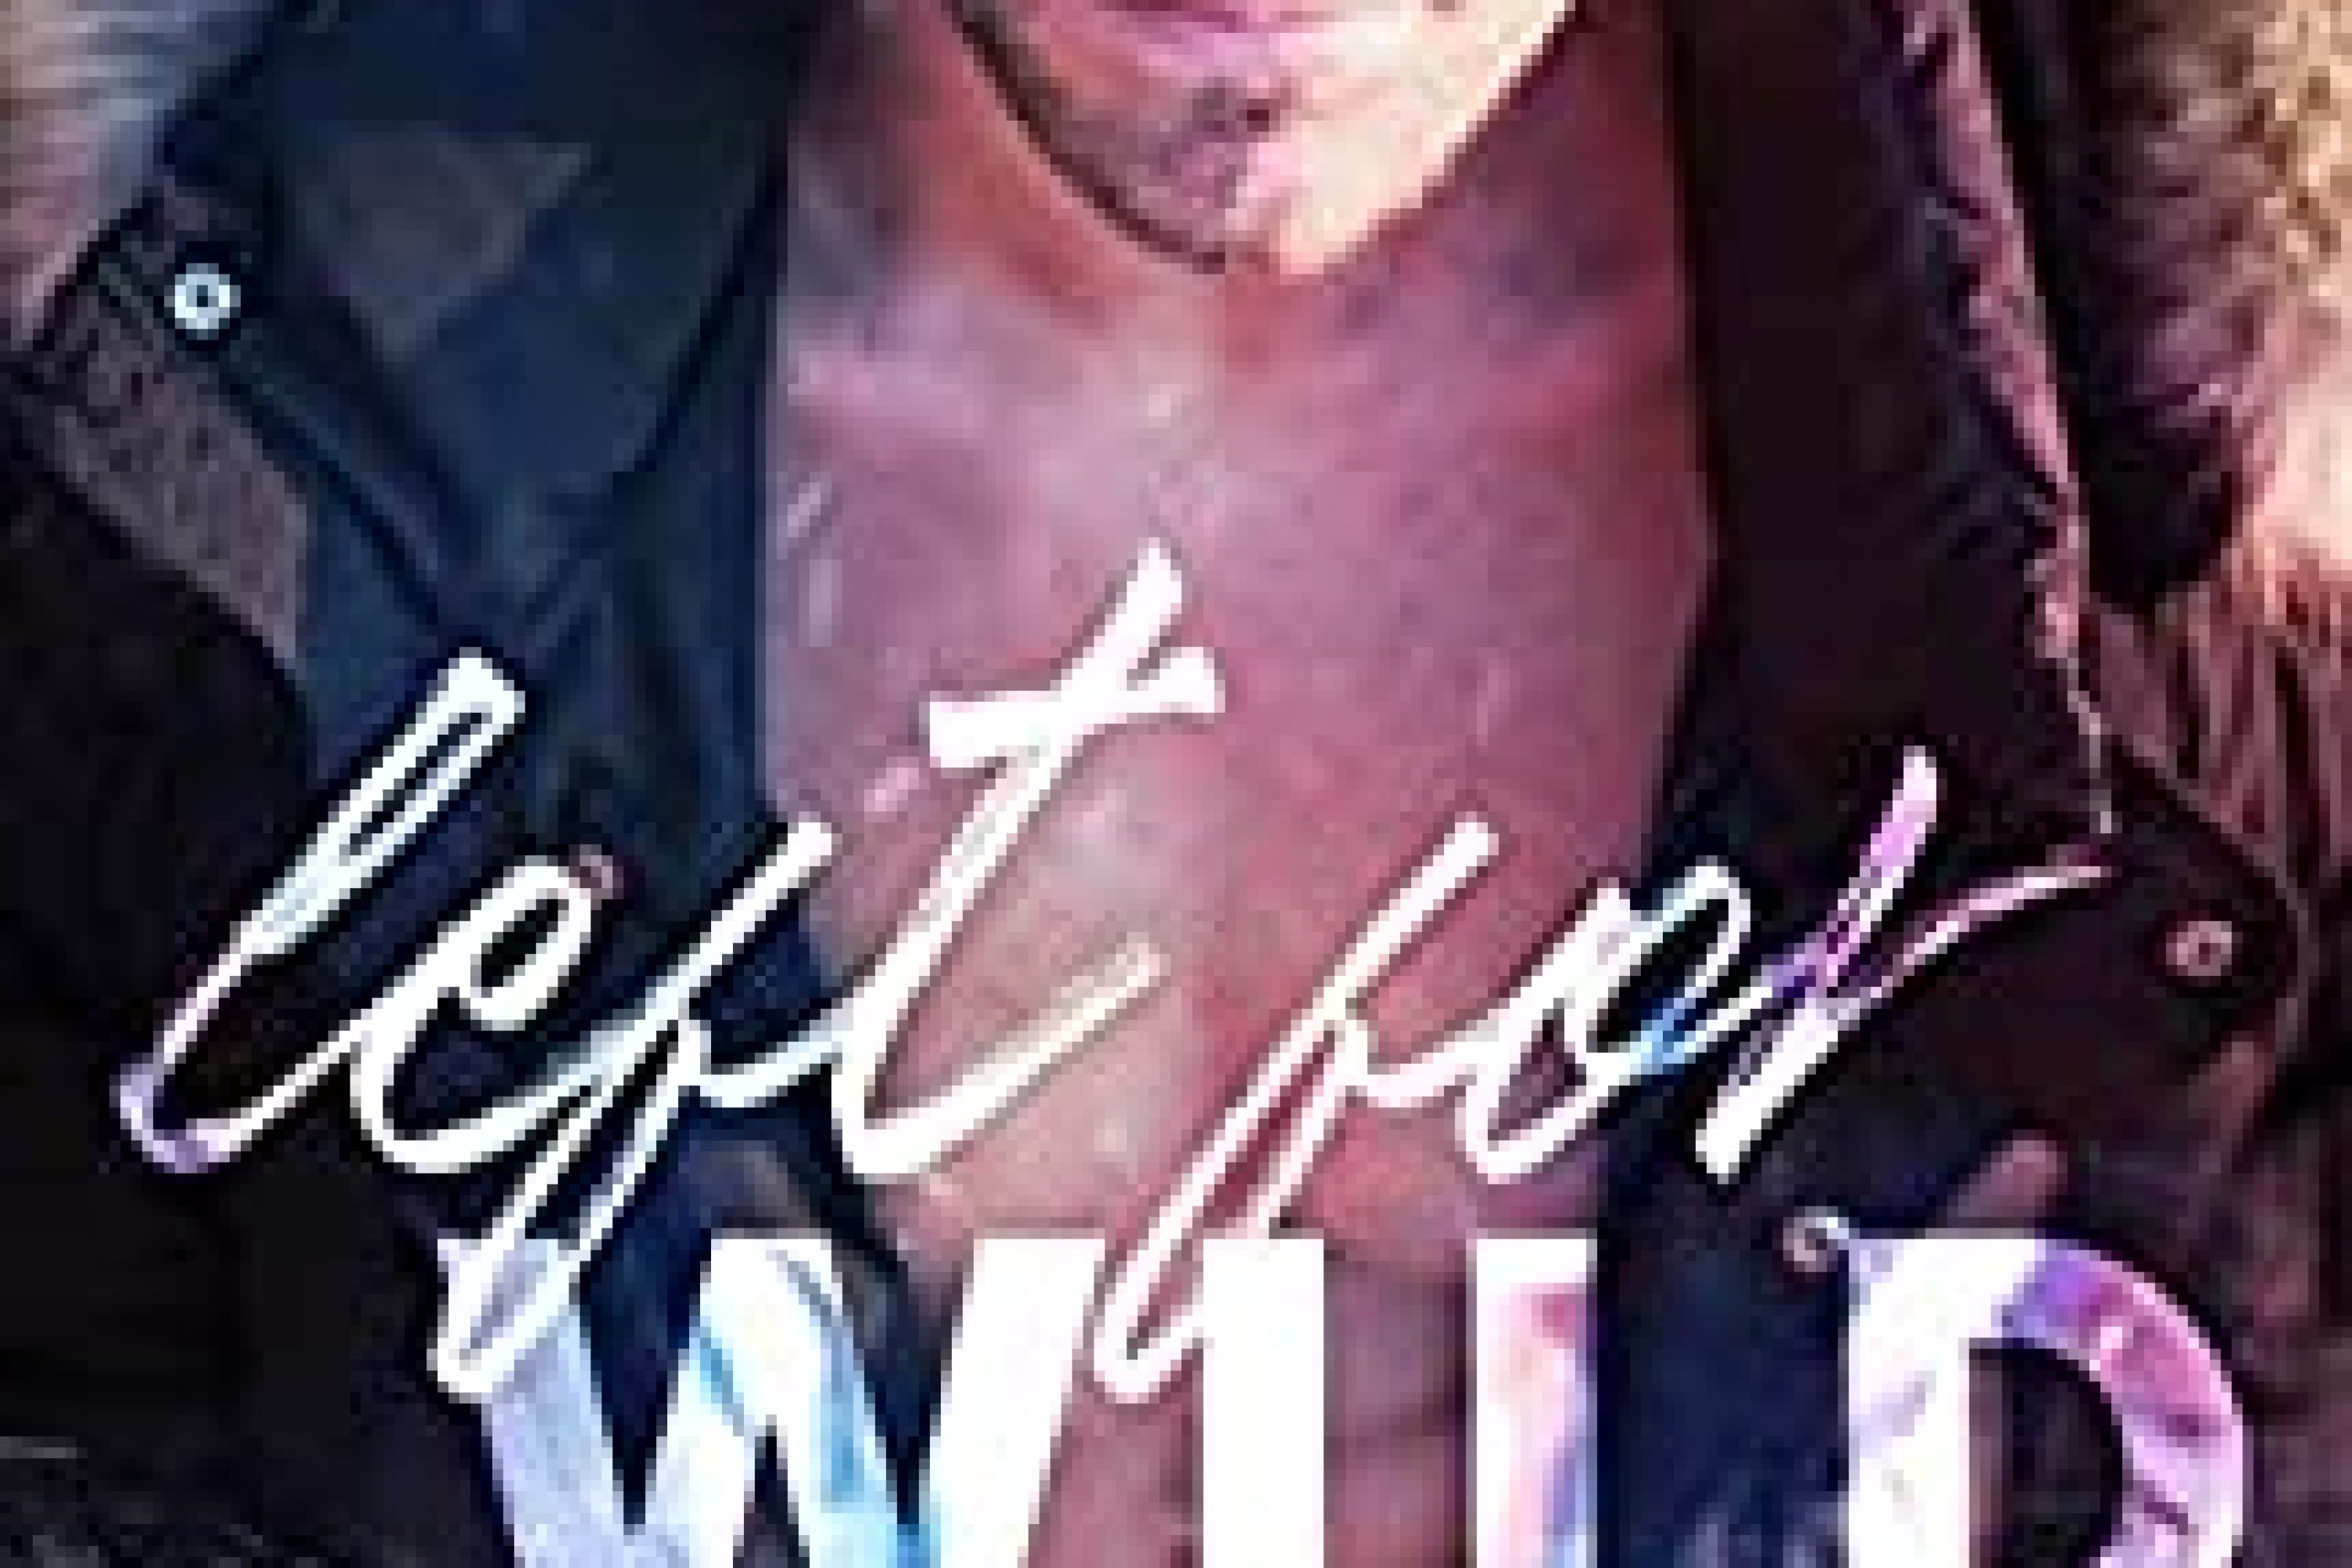 Review: Left for Wild by Harloe Rae